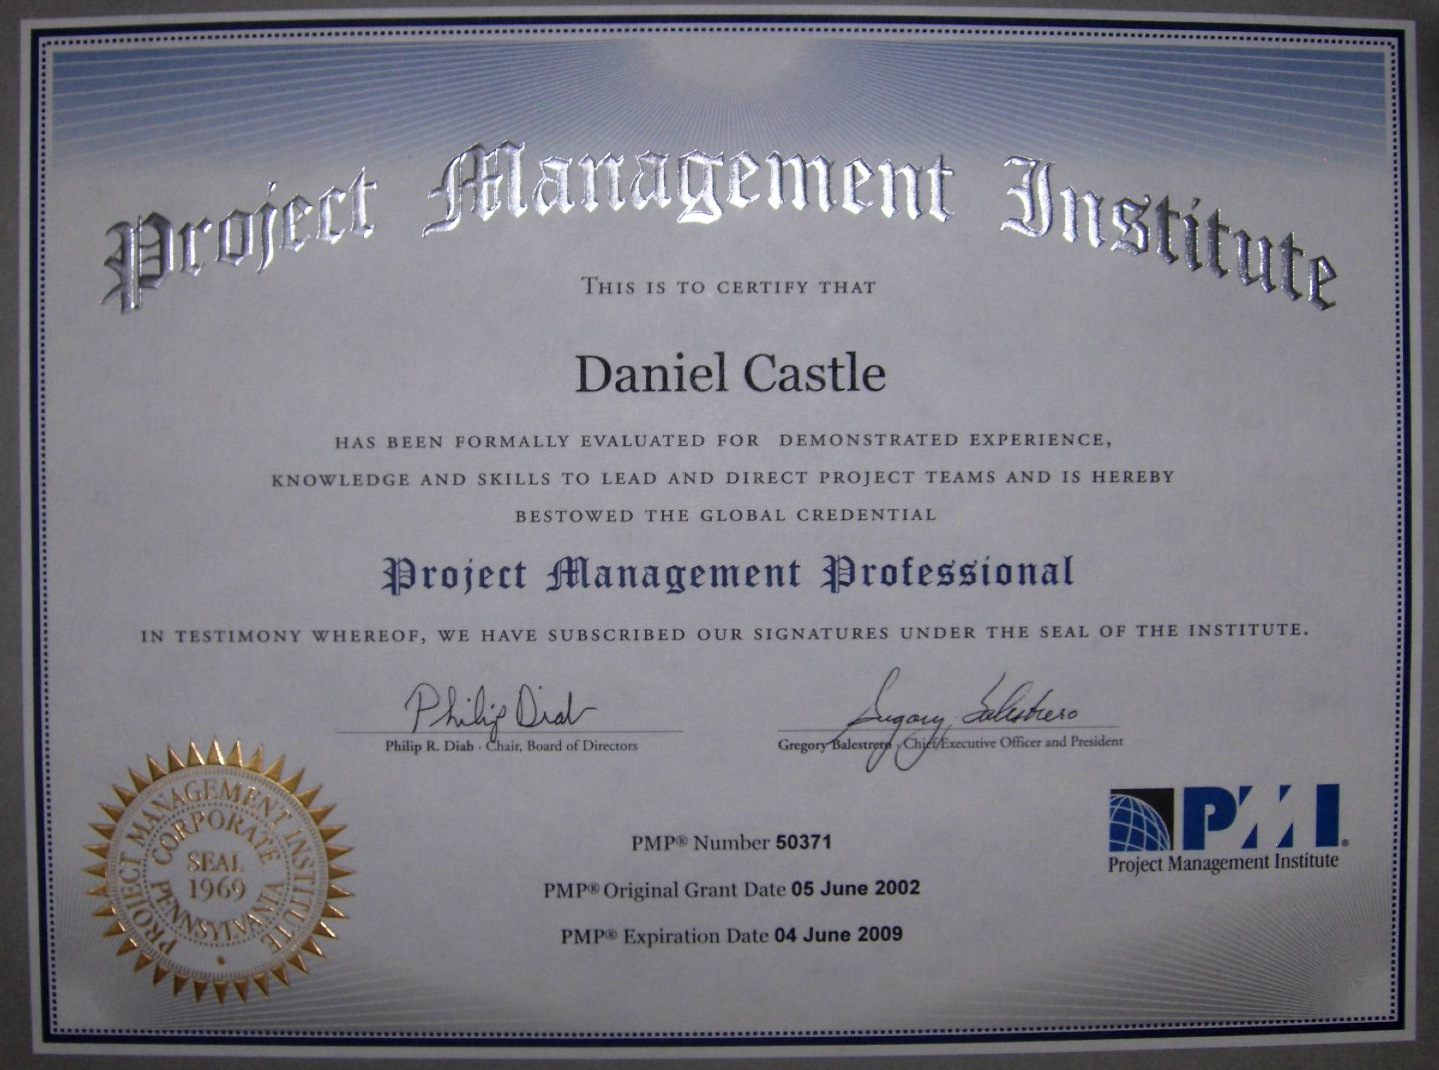 Engineering Project Management Certification  2017, 2018. New Orleans Homeowners Insurance. Can You Send A Fax Online British Auto Repair. Technical University Of Colorado. Georgia Tech Online Degree Online Gifts Cards. Free Digital Signature Software Download. Best Diaper For Overnight Www Bridgeport Edu. Managed It Services Chicago Peliculas En Hd. How To Accept Credit Card Payments